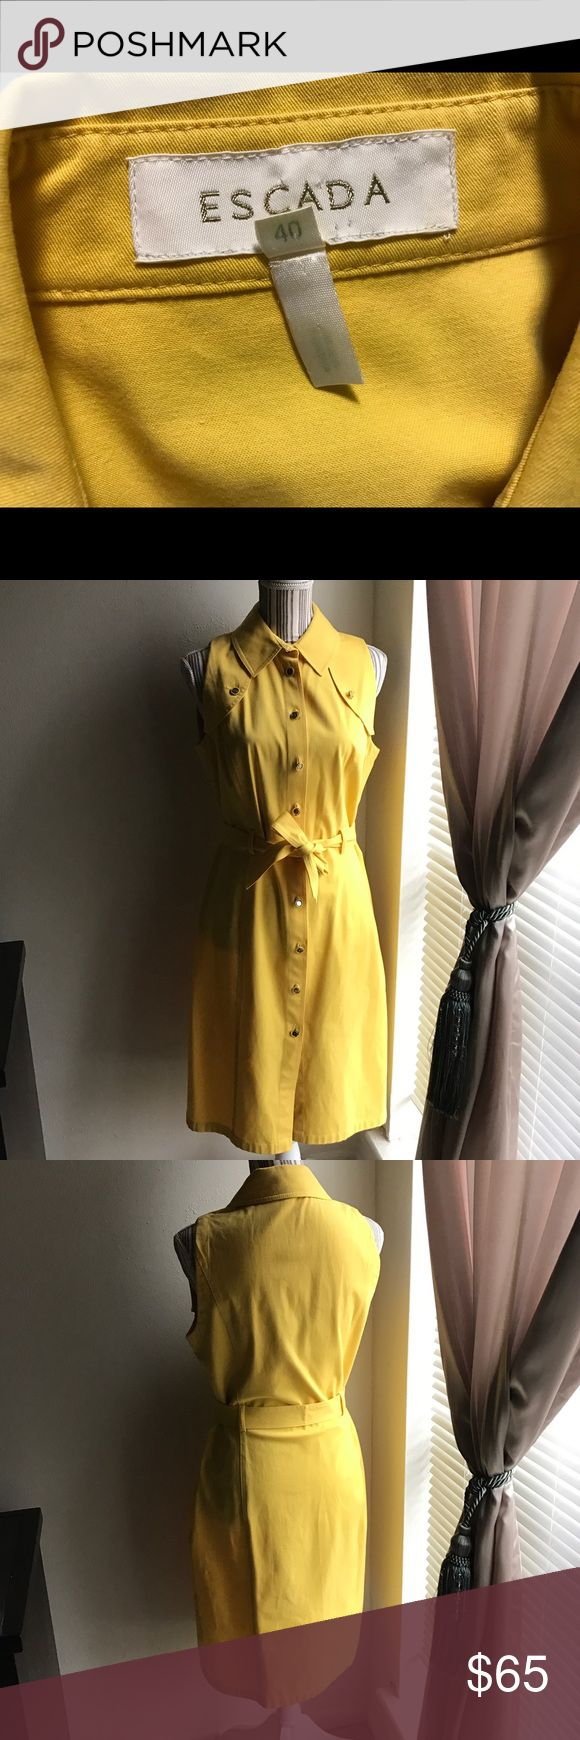 Escada Safari Button Down Dress Sz 40 Pre-loved Women's Escada Safari Button Down dress in Size 40. Dress is in excellent condition. No rips or stains. Color is yellow. Measurements: Bust - 40 inches, Length- 42 inches, and Waist - 36 inches. Beautiful dress for Spring and Summer! Escada Dresses